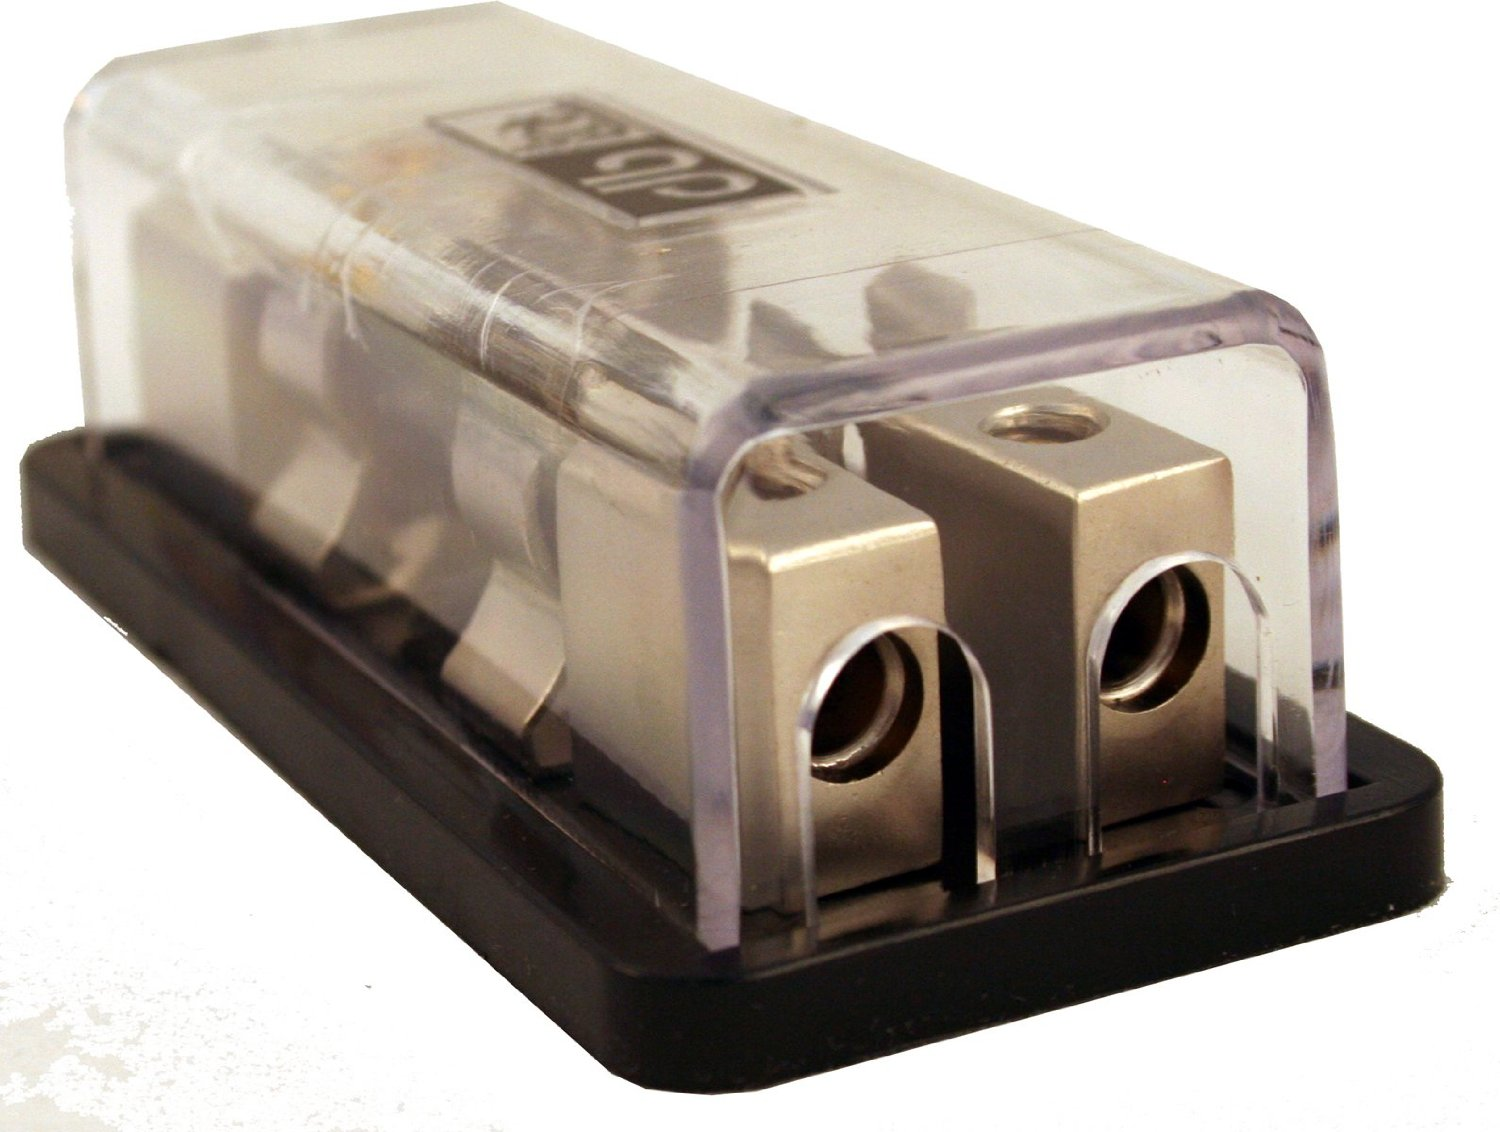 1 In 2 Out ANL Fused Eye Candy 0 4 Gauge Power Distribution Blocks Block 12V Car Truck Mobile Offroad